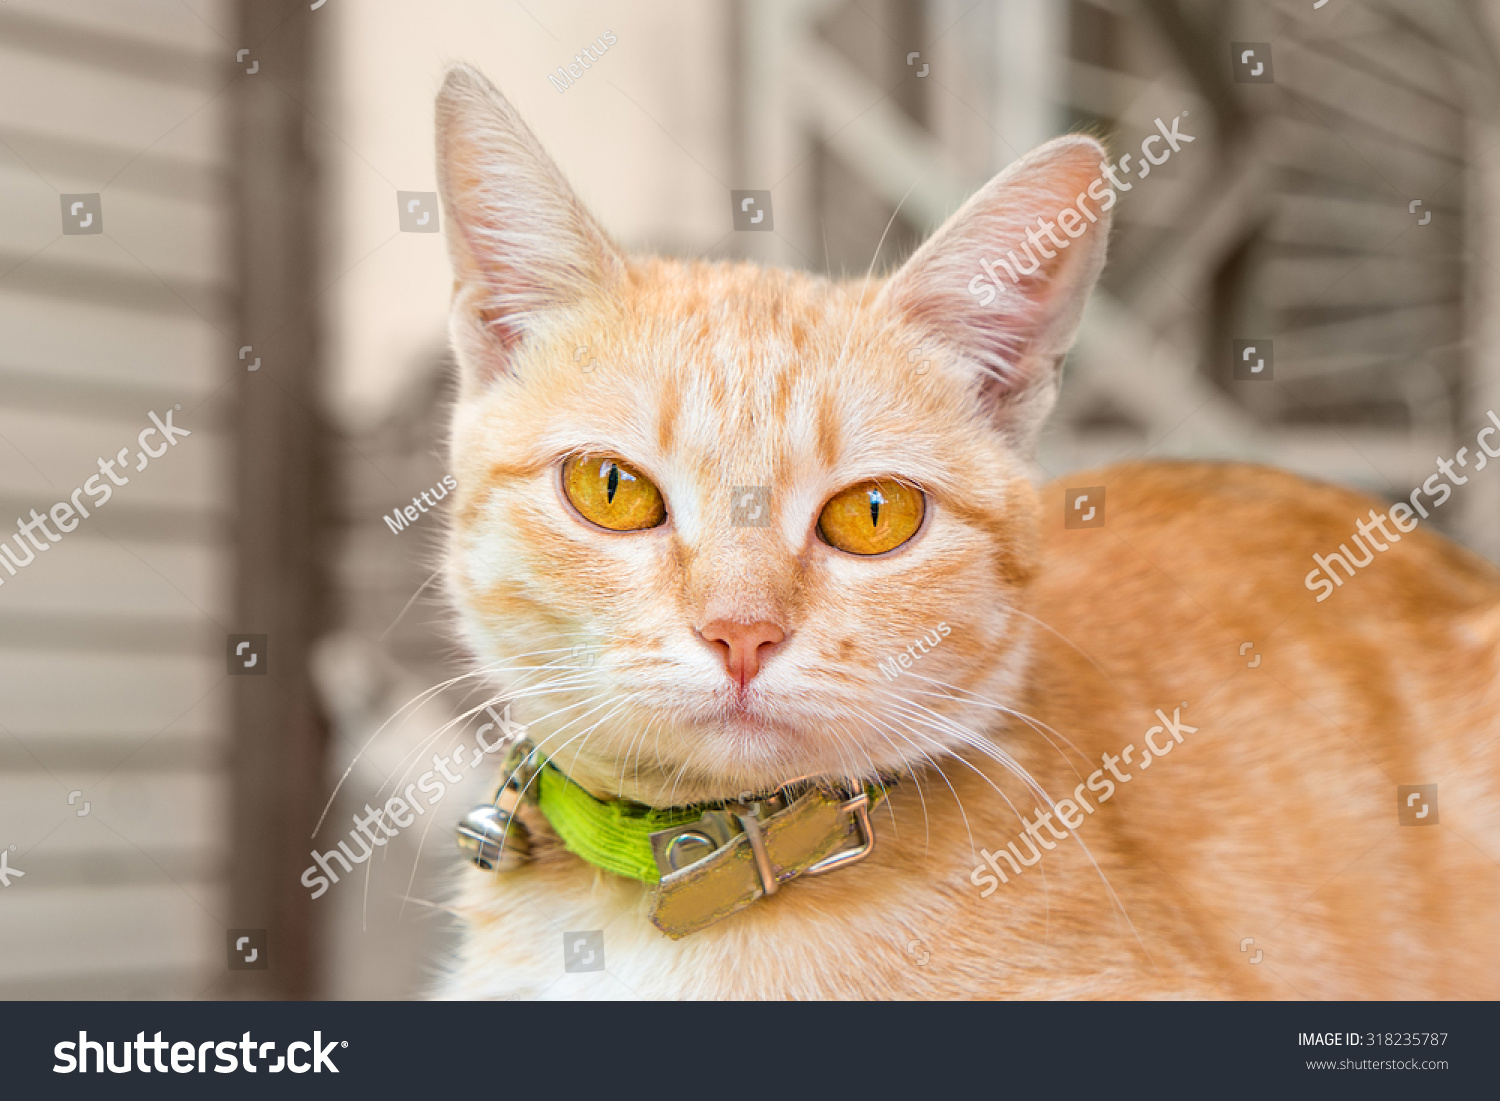 Ginger cat head. Cute orange cat in collar looking at camera. Cute cat outdoors closeup view. Green pet collar.